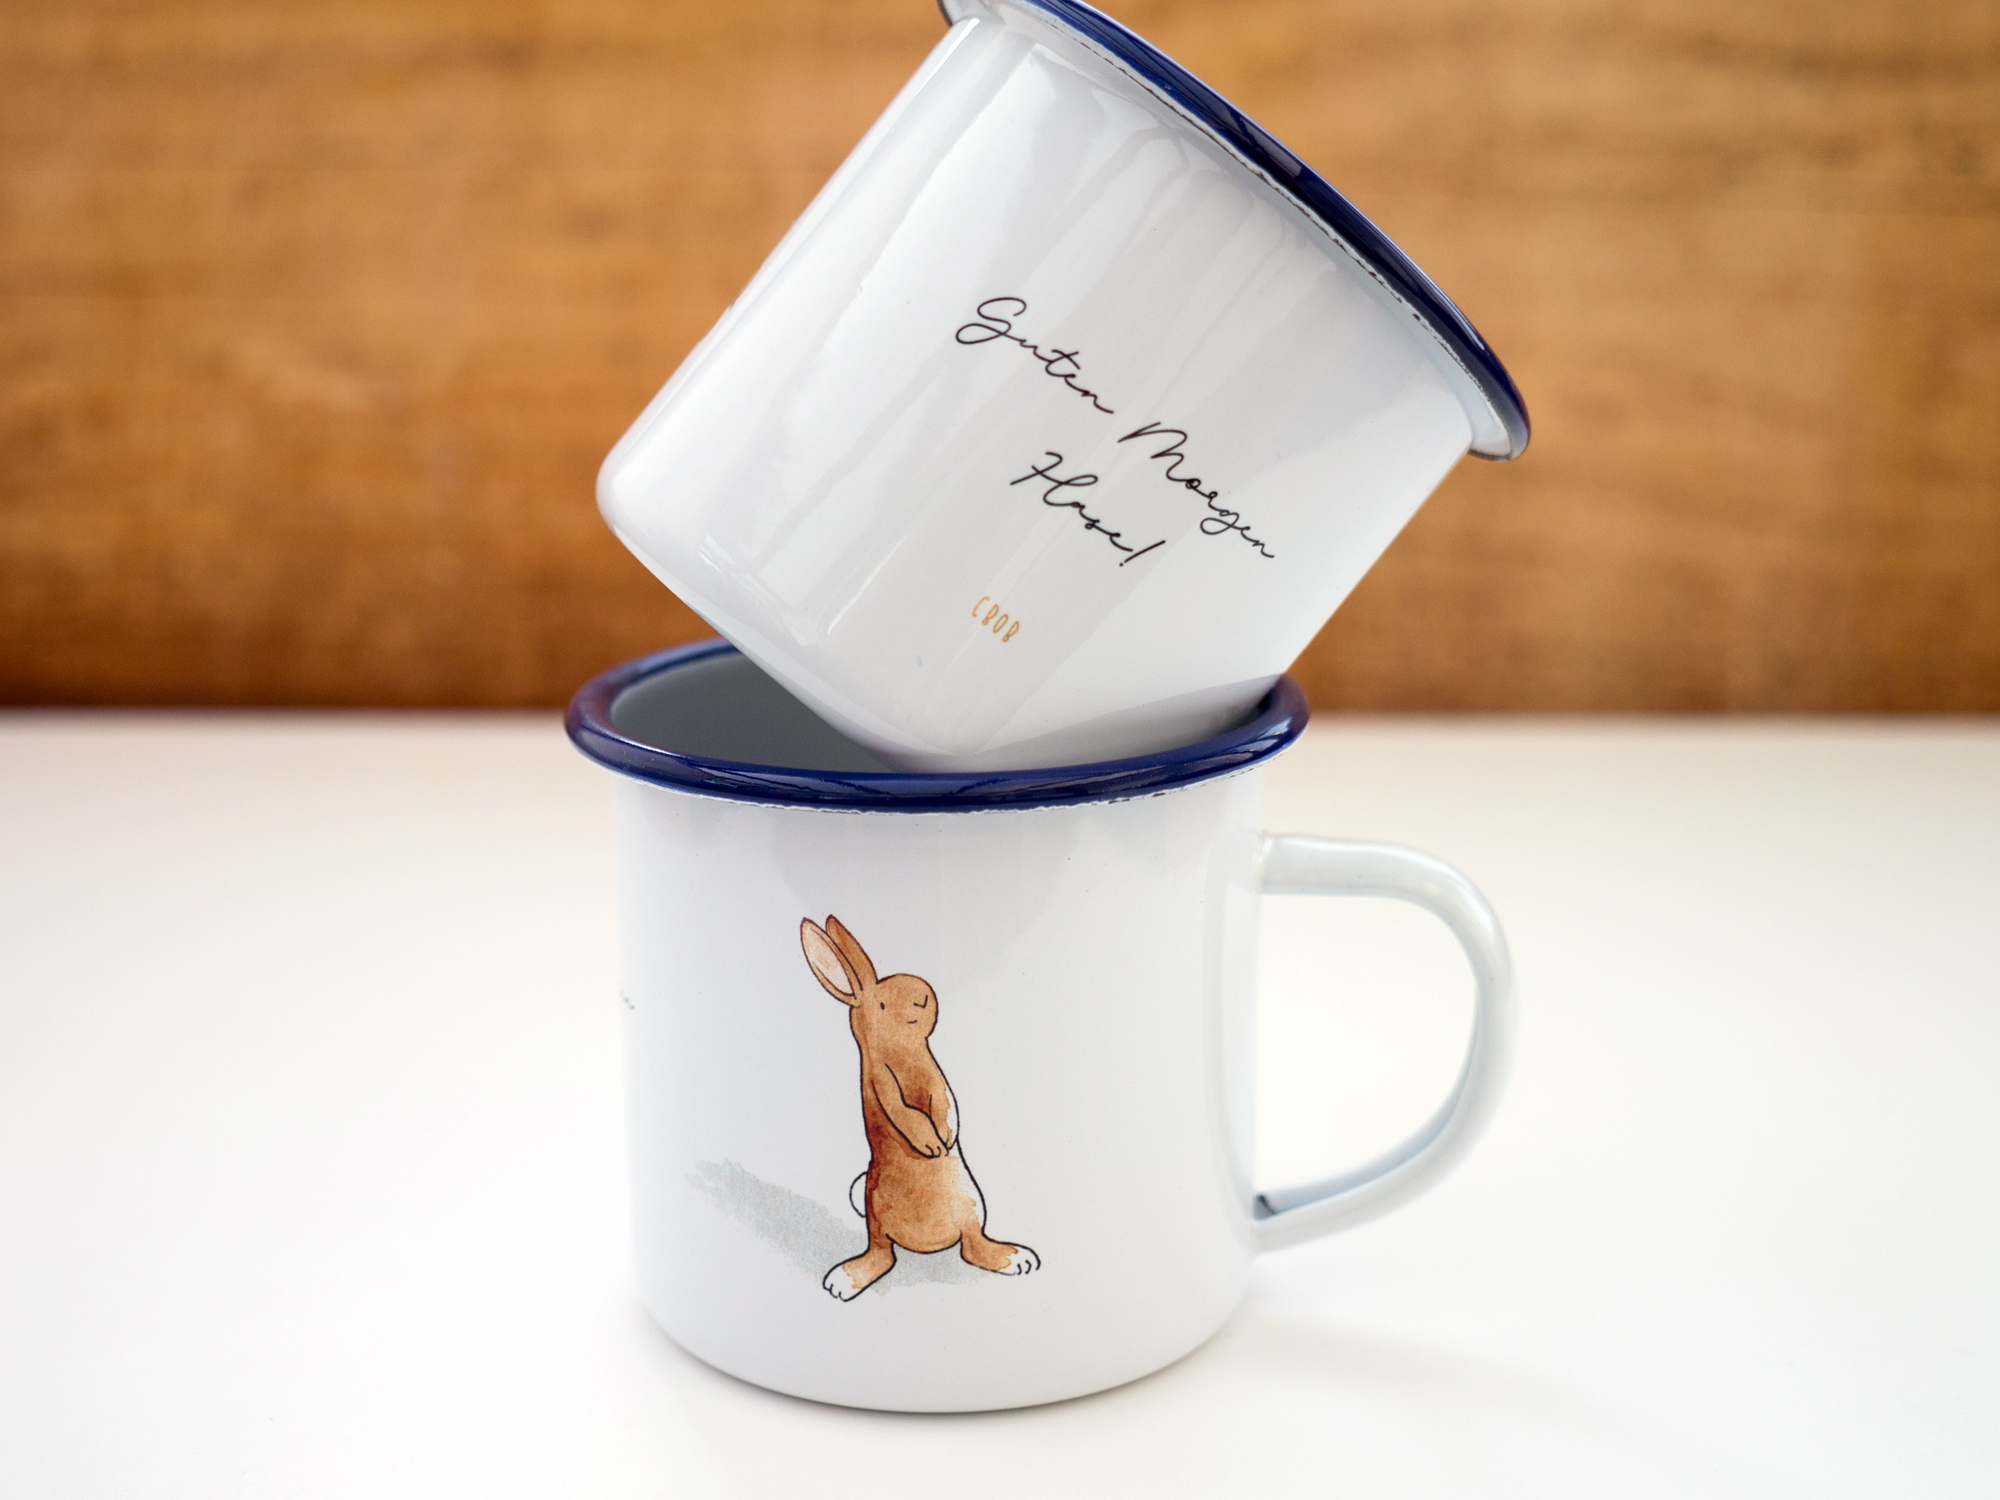 Emaille_Tasse_Hase_01